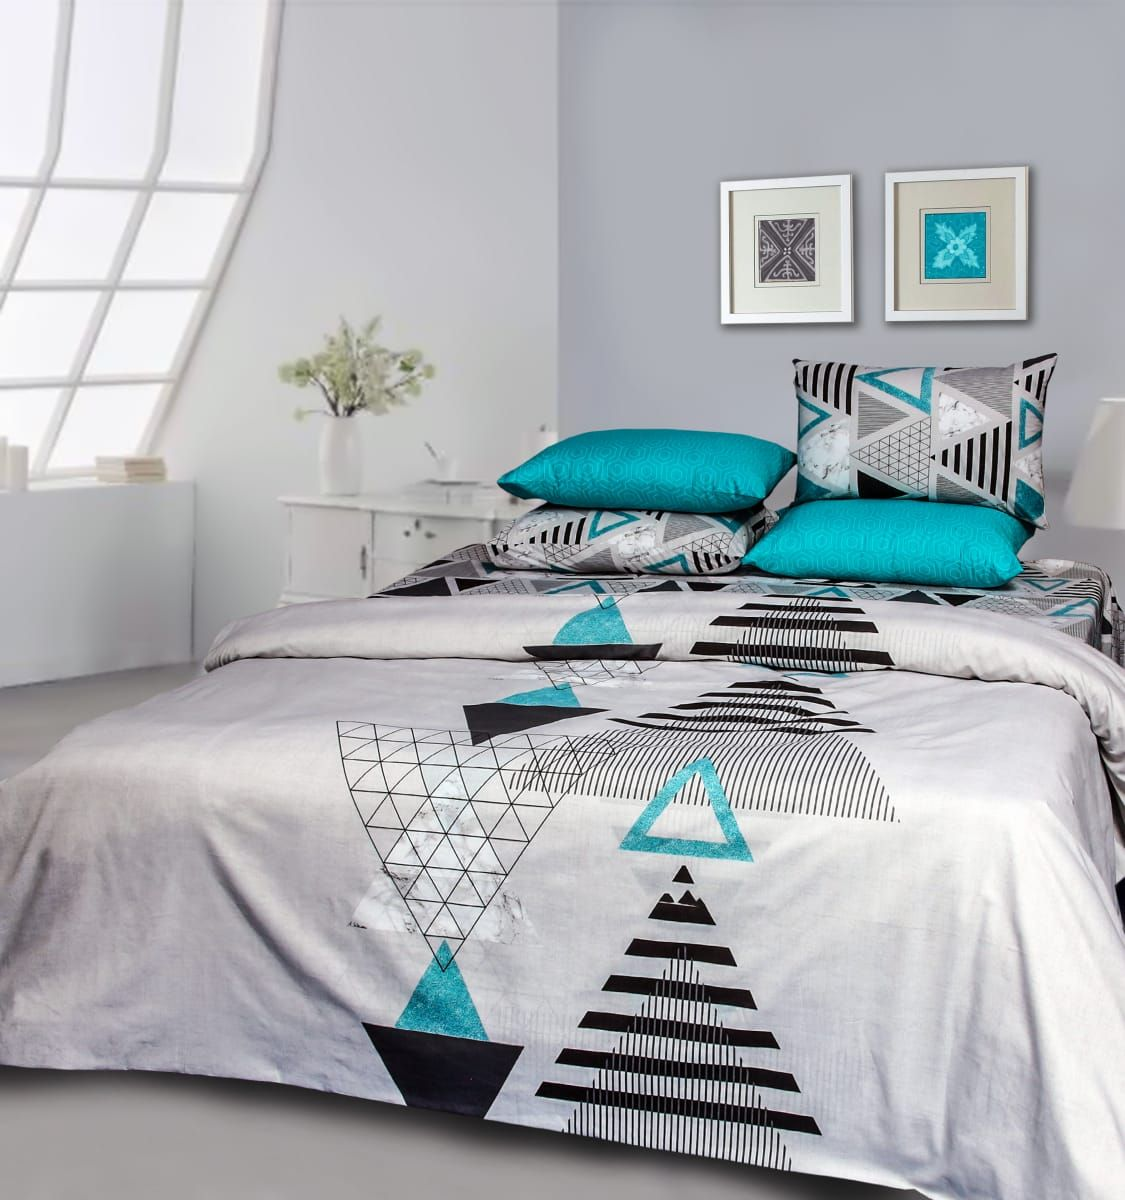 How To Buy Best Bed Sheet Best Bed Sheets Cool Beds Quality Sheets